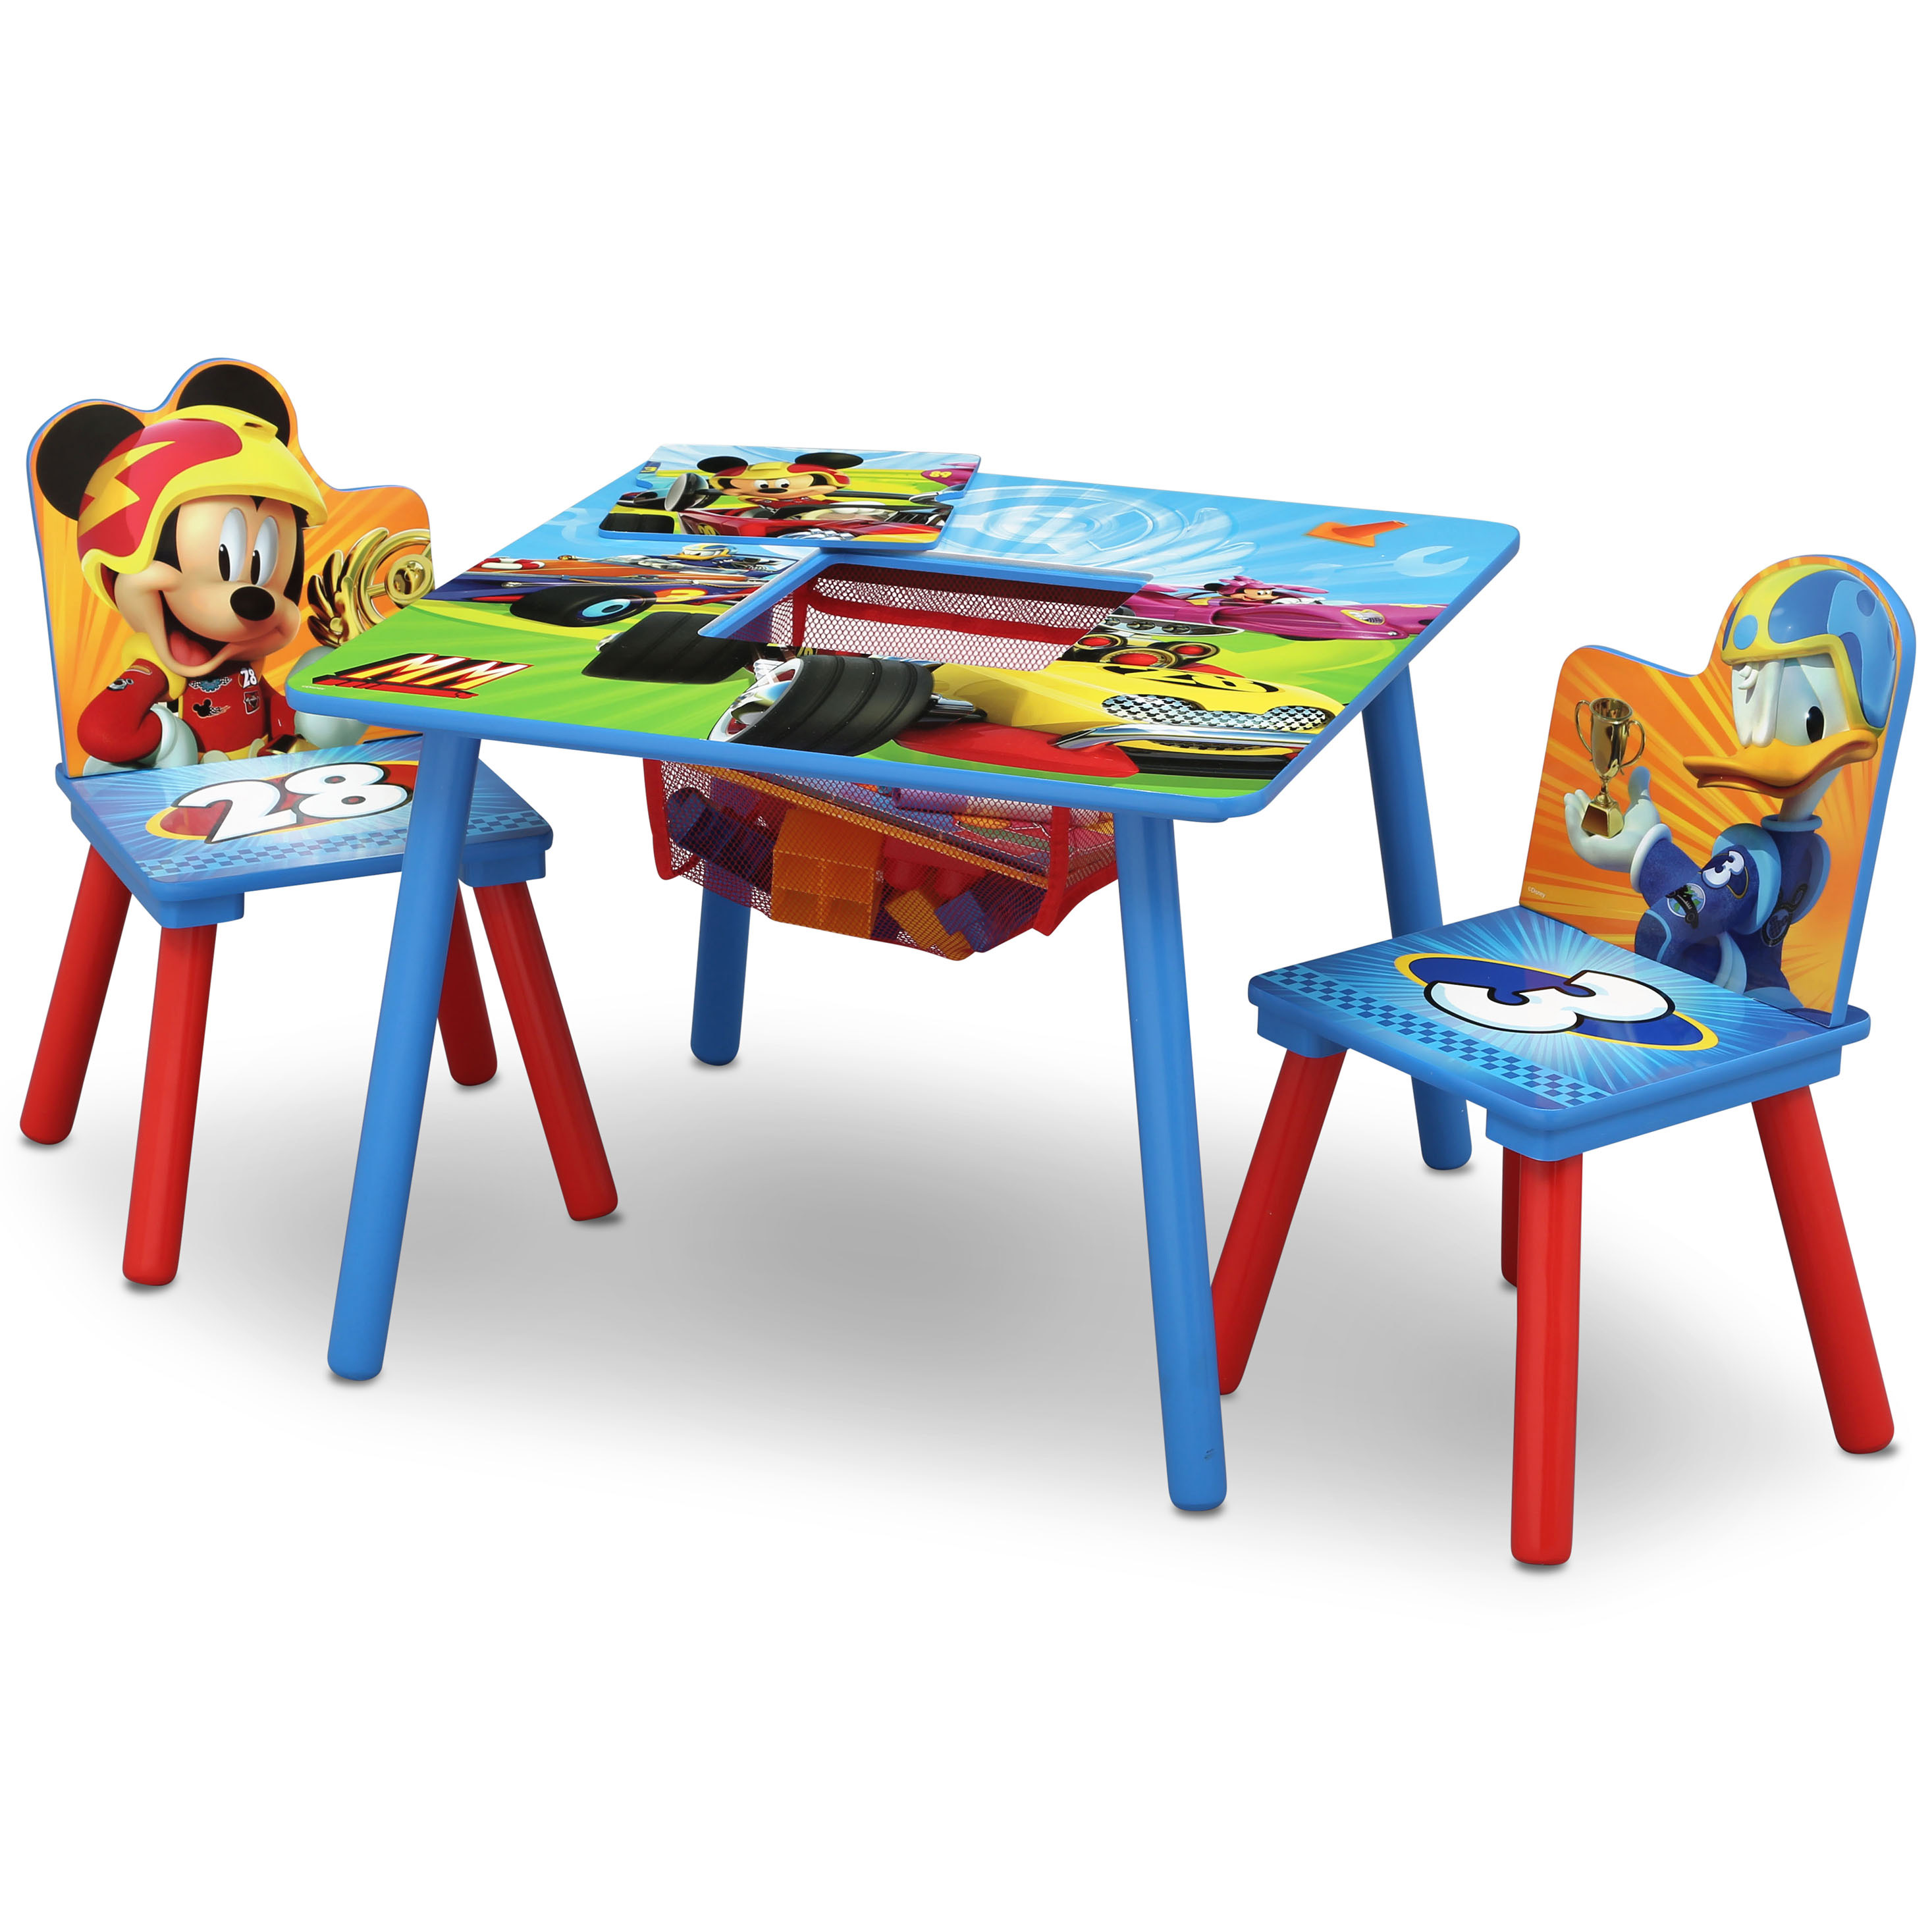 Disney Mickey Mouse Table & Chair Set with Storage